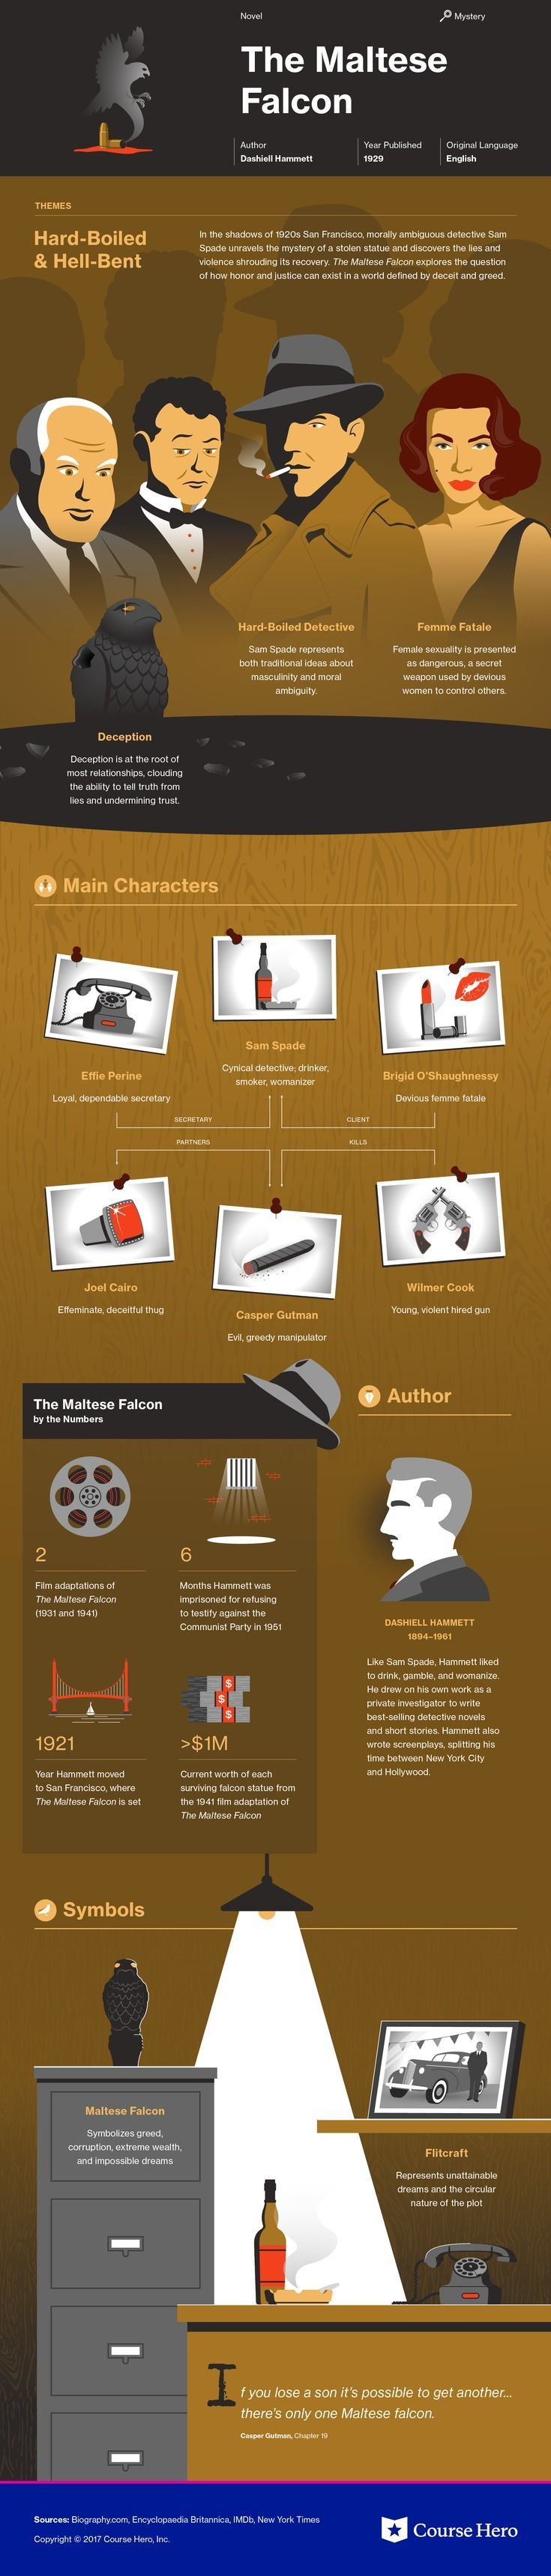 This @CourseHero infographic on The Maltese Falcon is both visually stunning and informative!